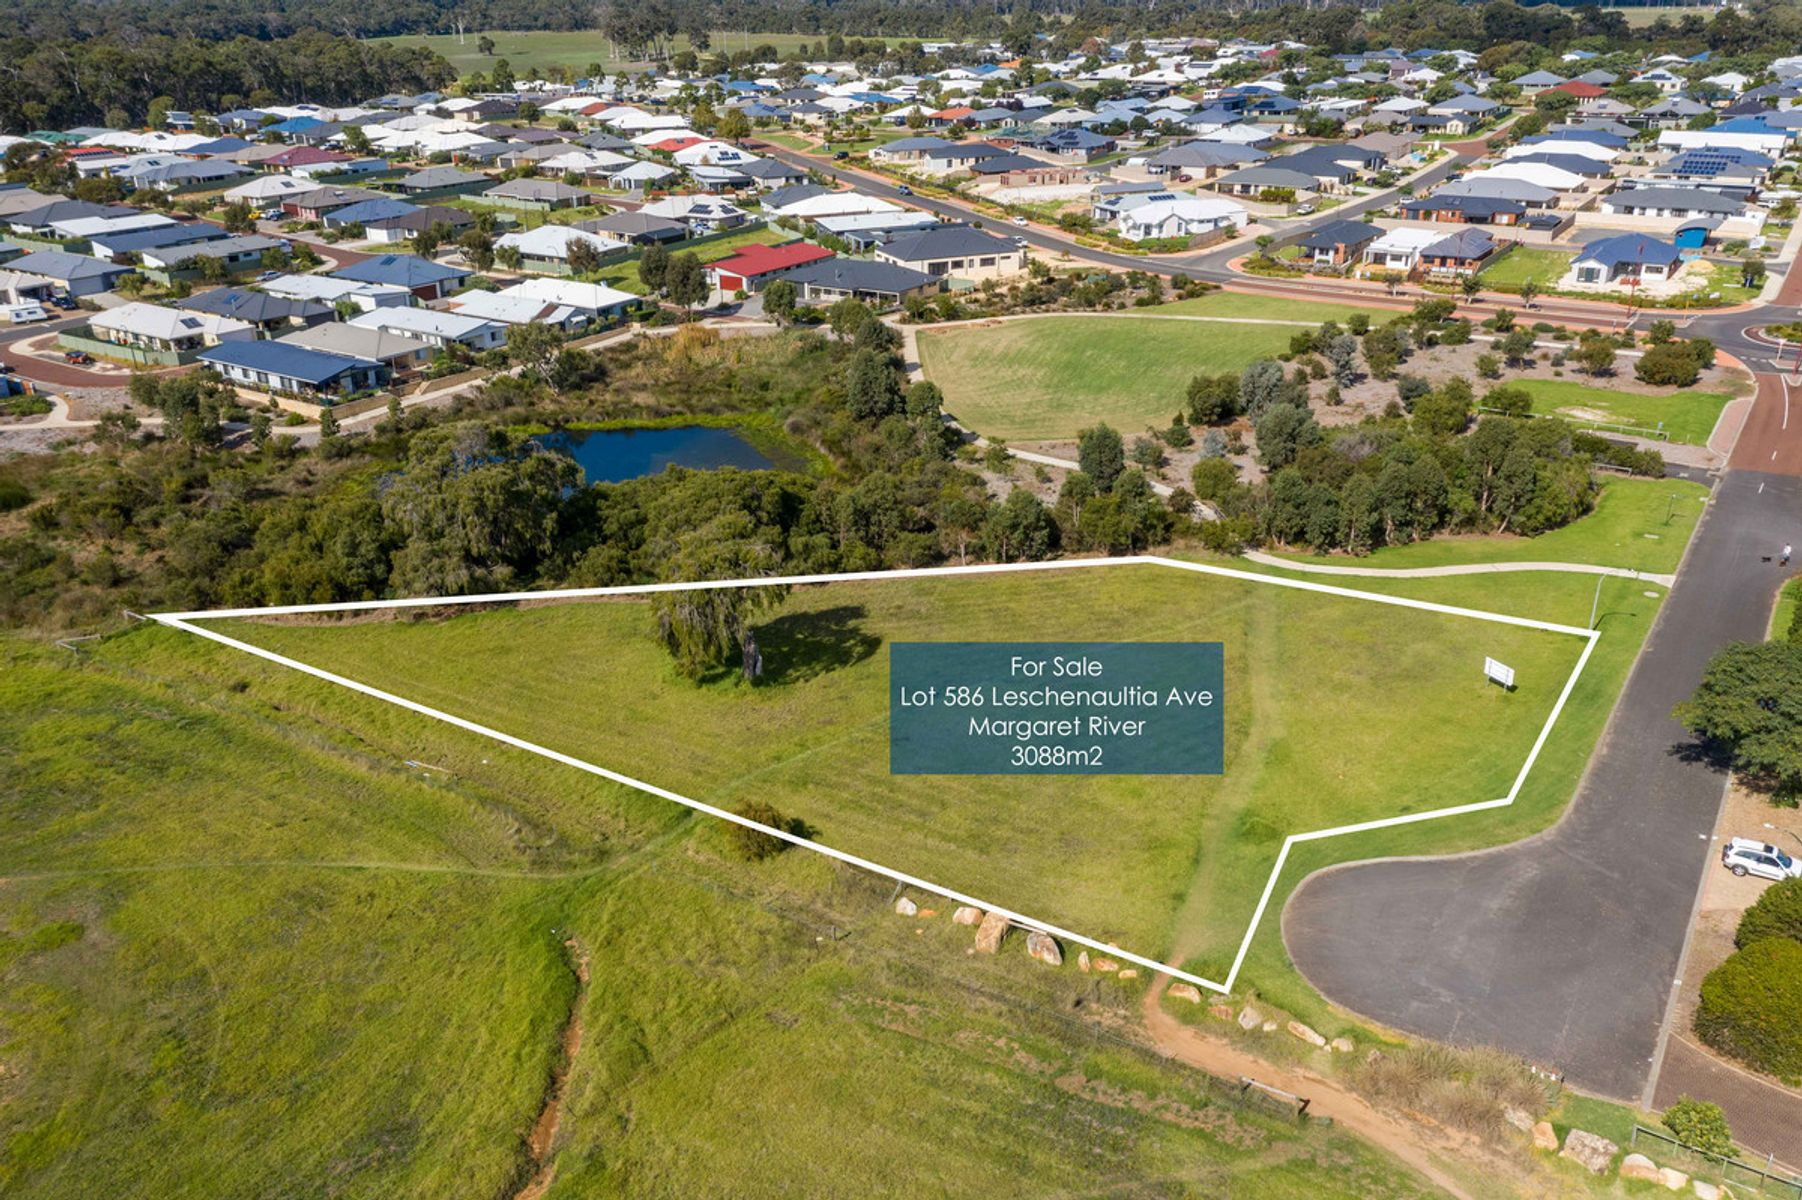 Lot 586 Leschenaultia Avenue, Margaret River, WA 6285